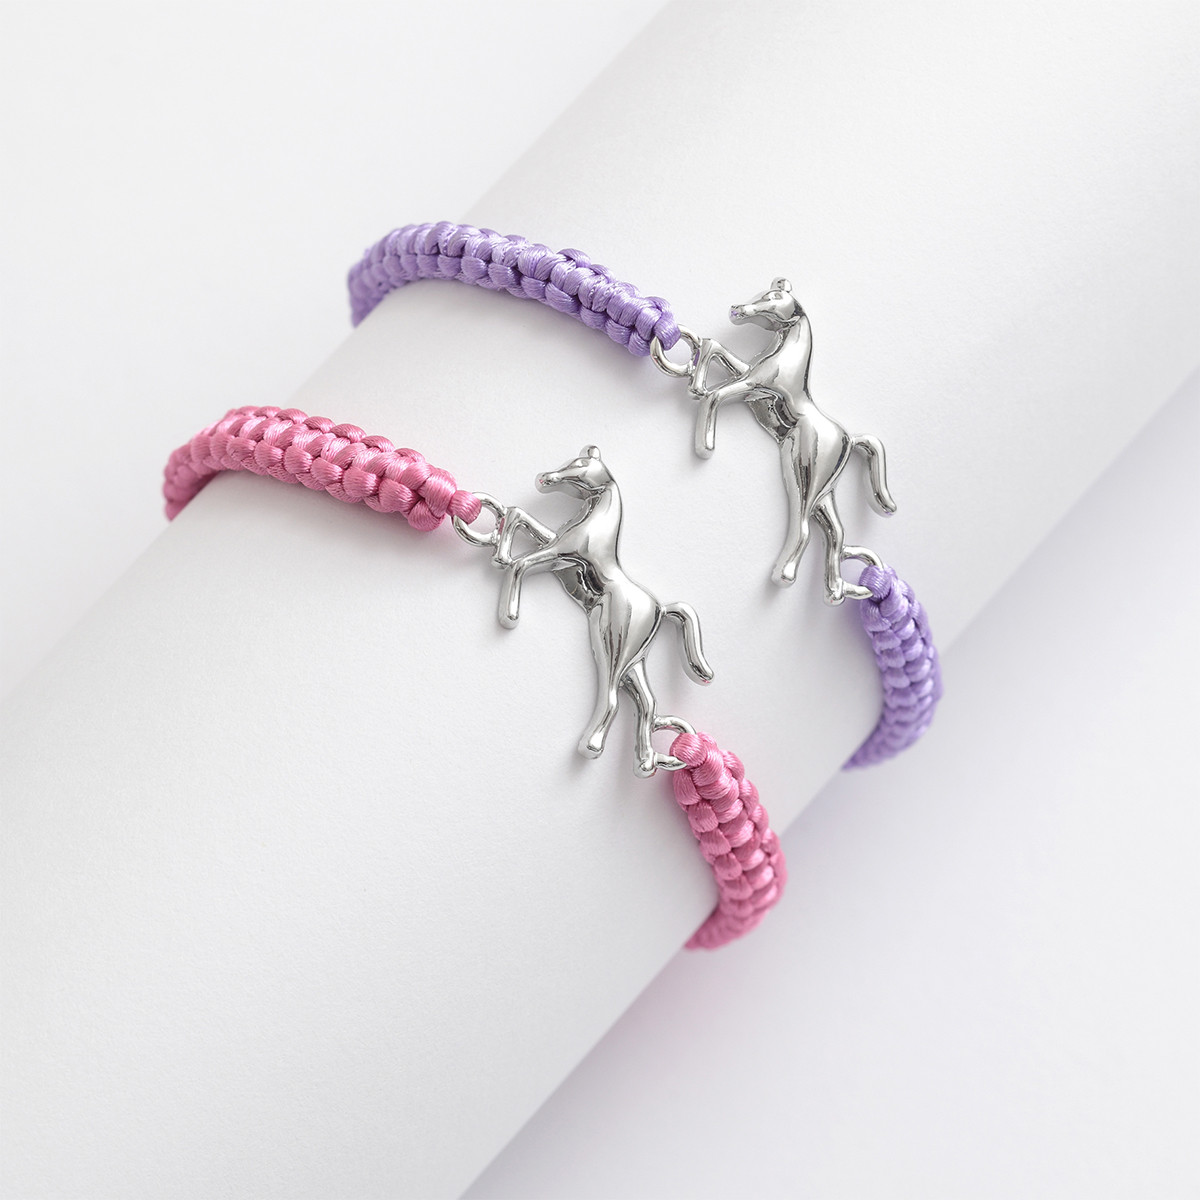 Adjustable Cord Bracelet with Foal